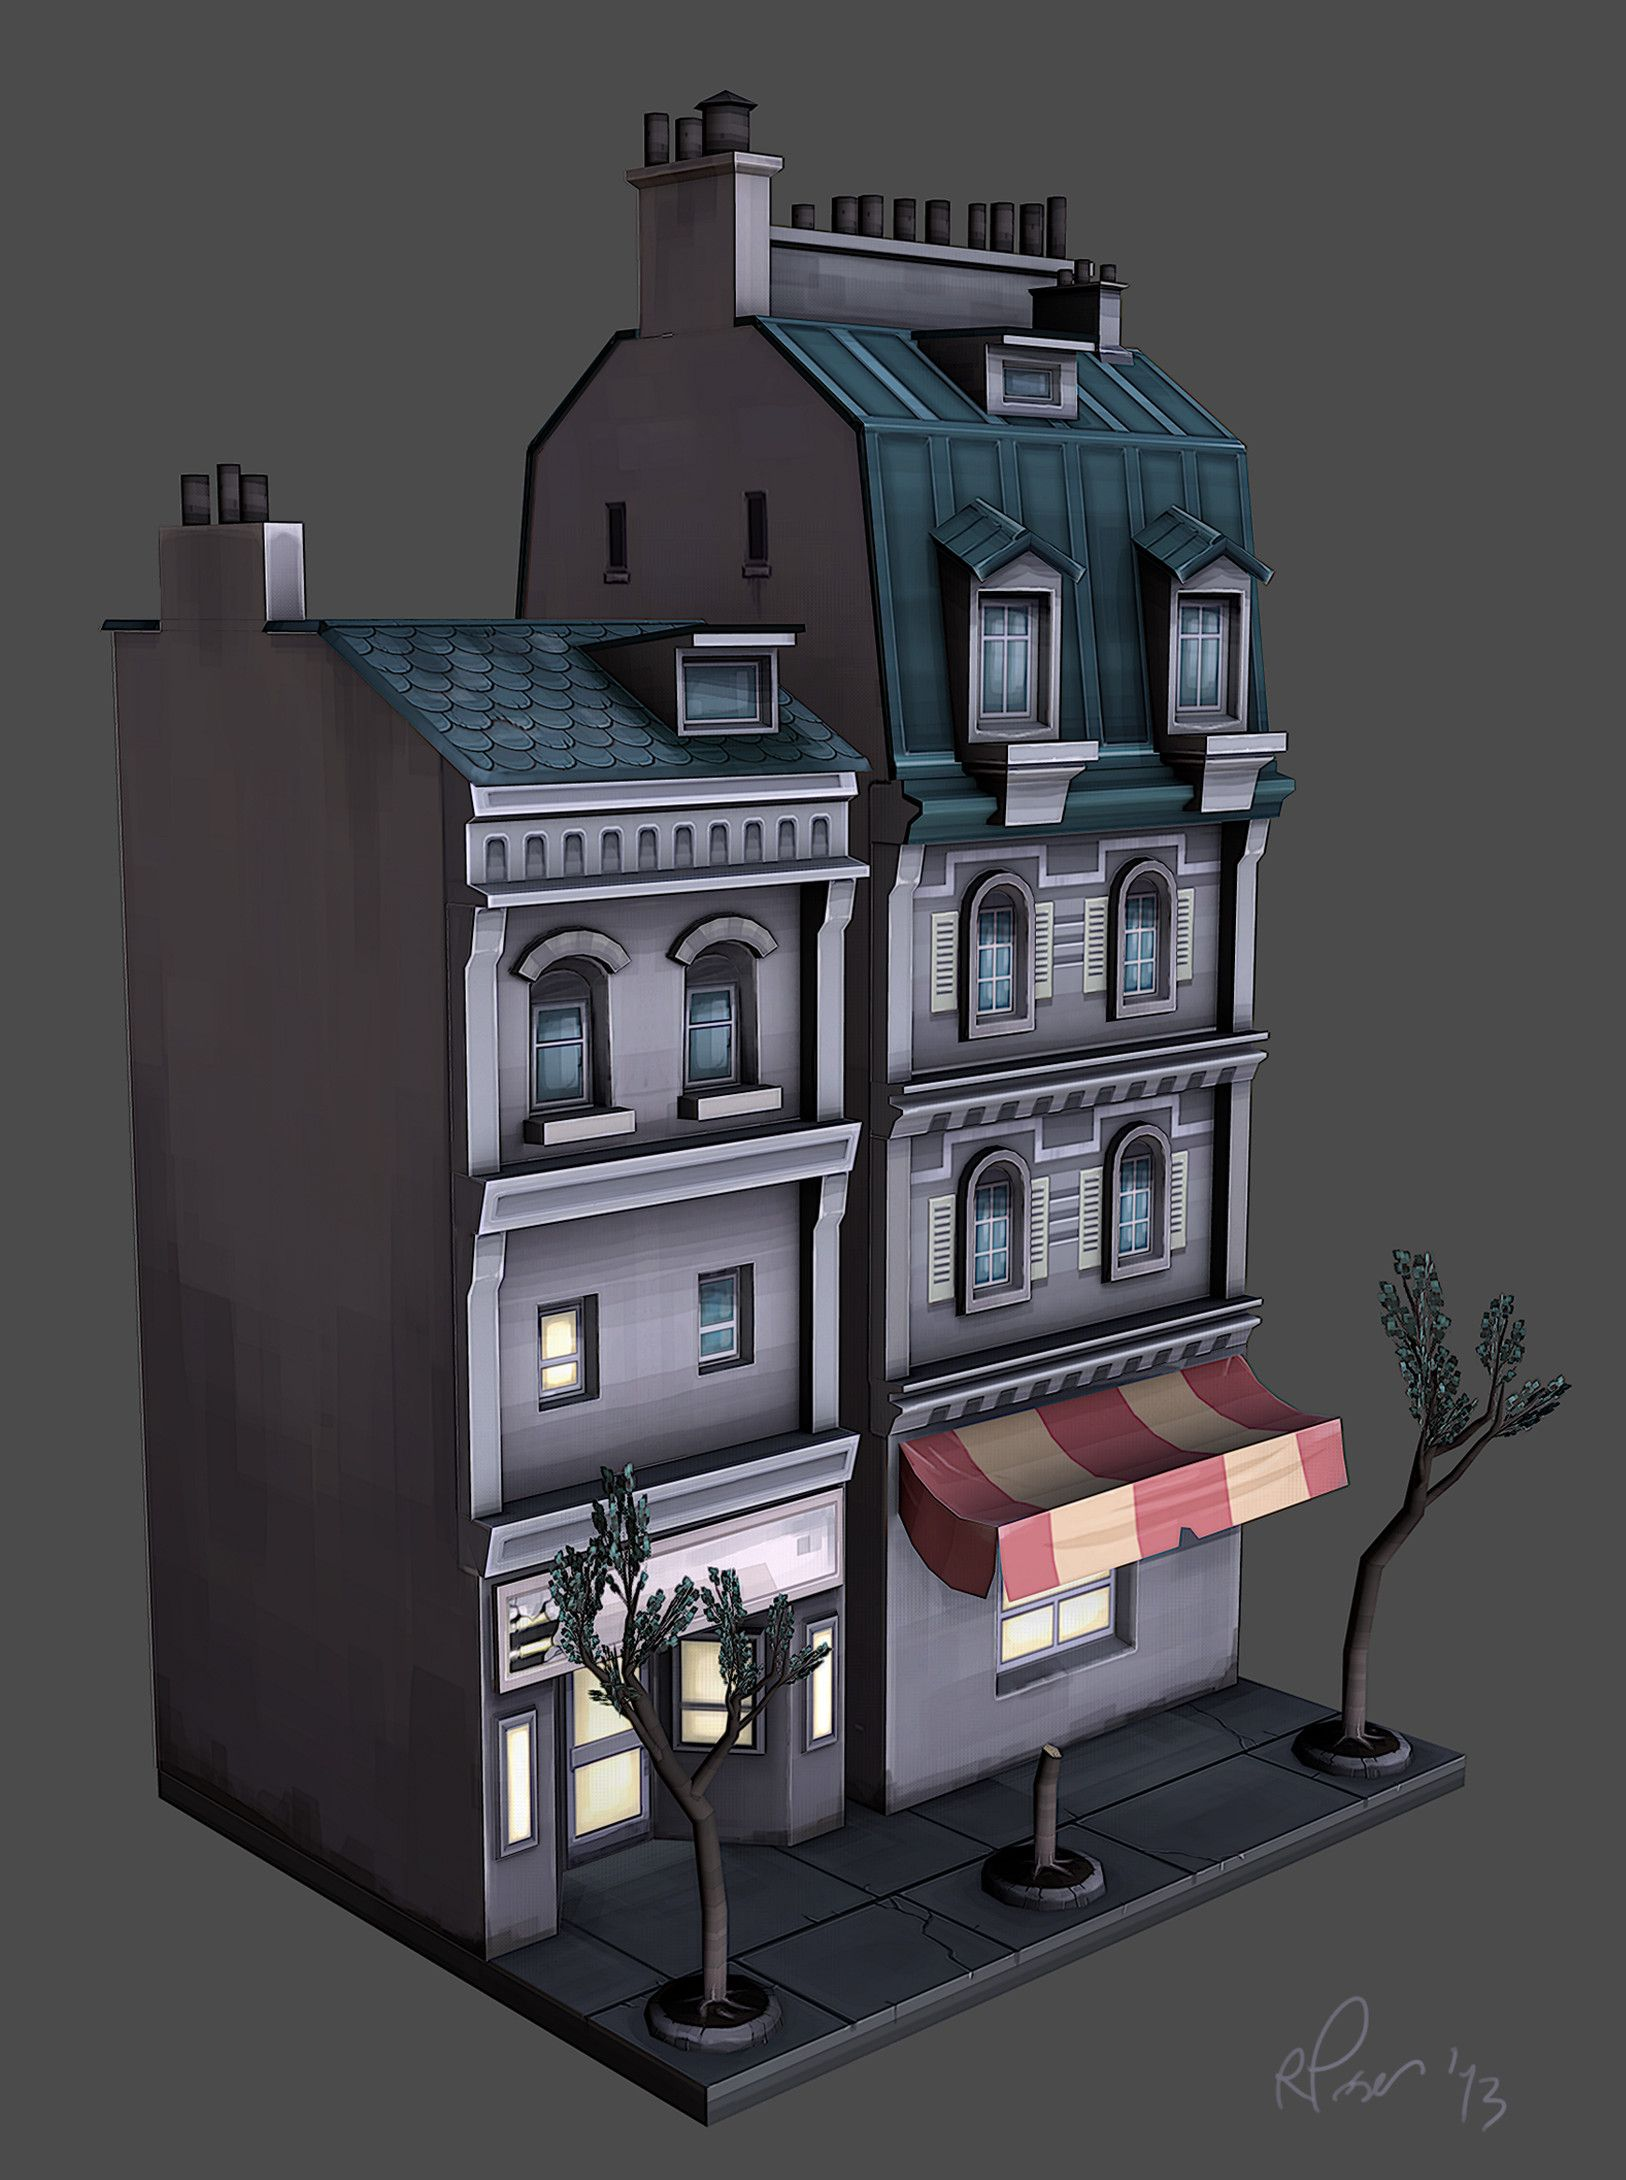 LOWPOLY (sub 1000~ triangle models) - Page 430 - Polycount Forum